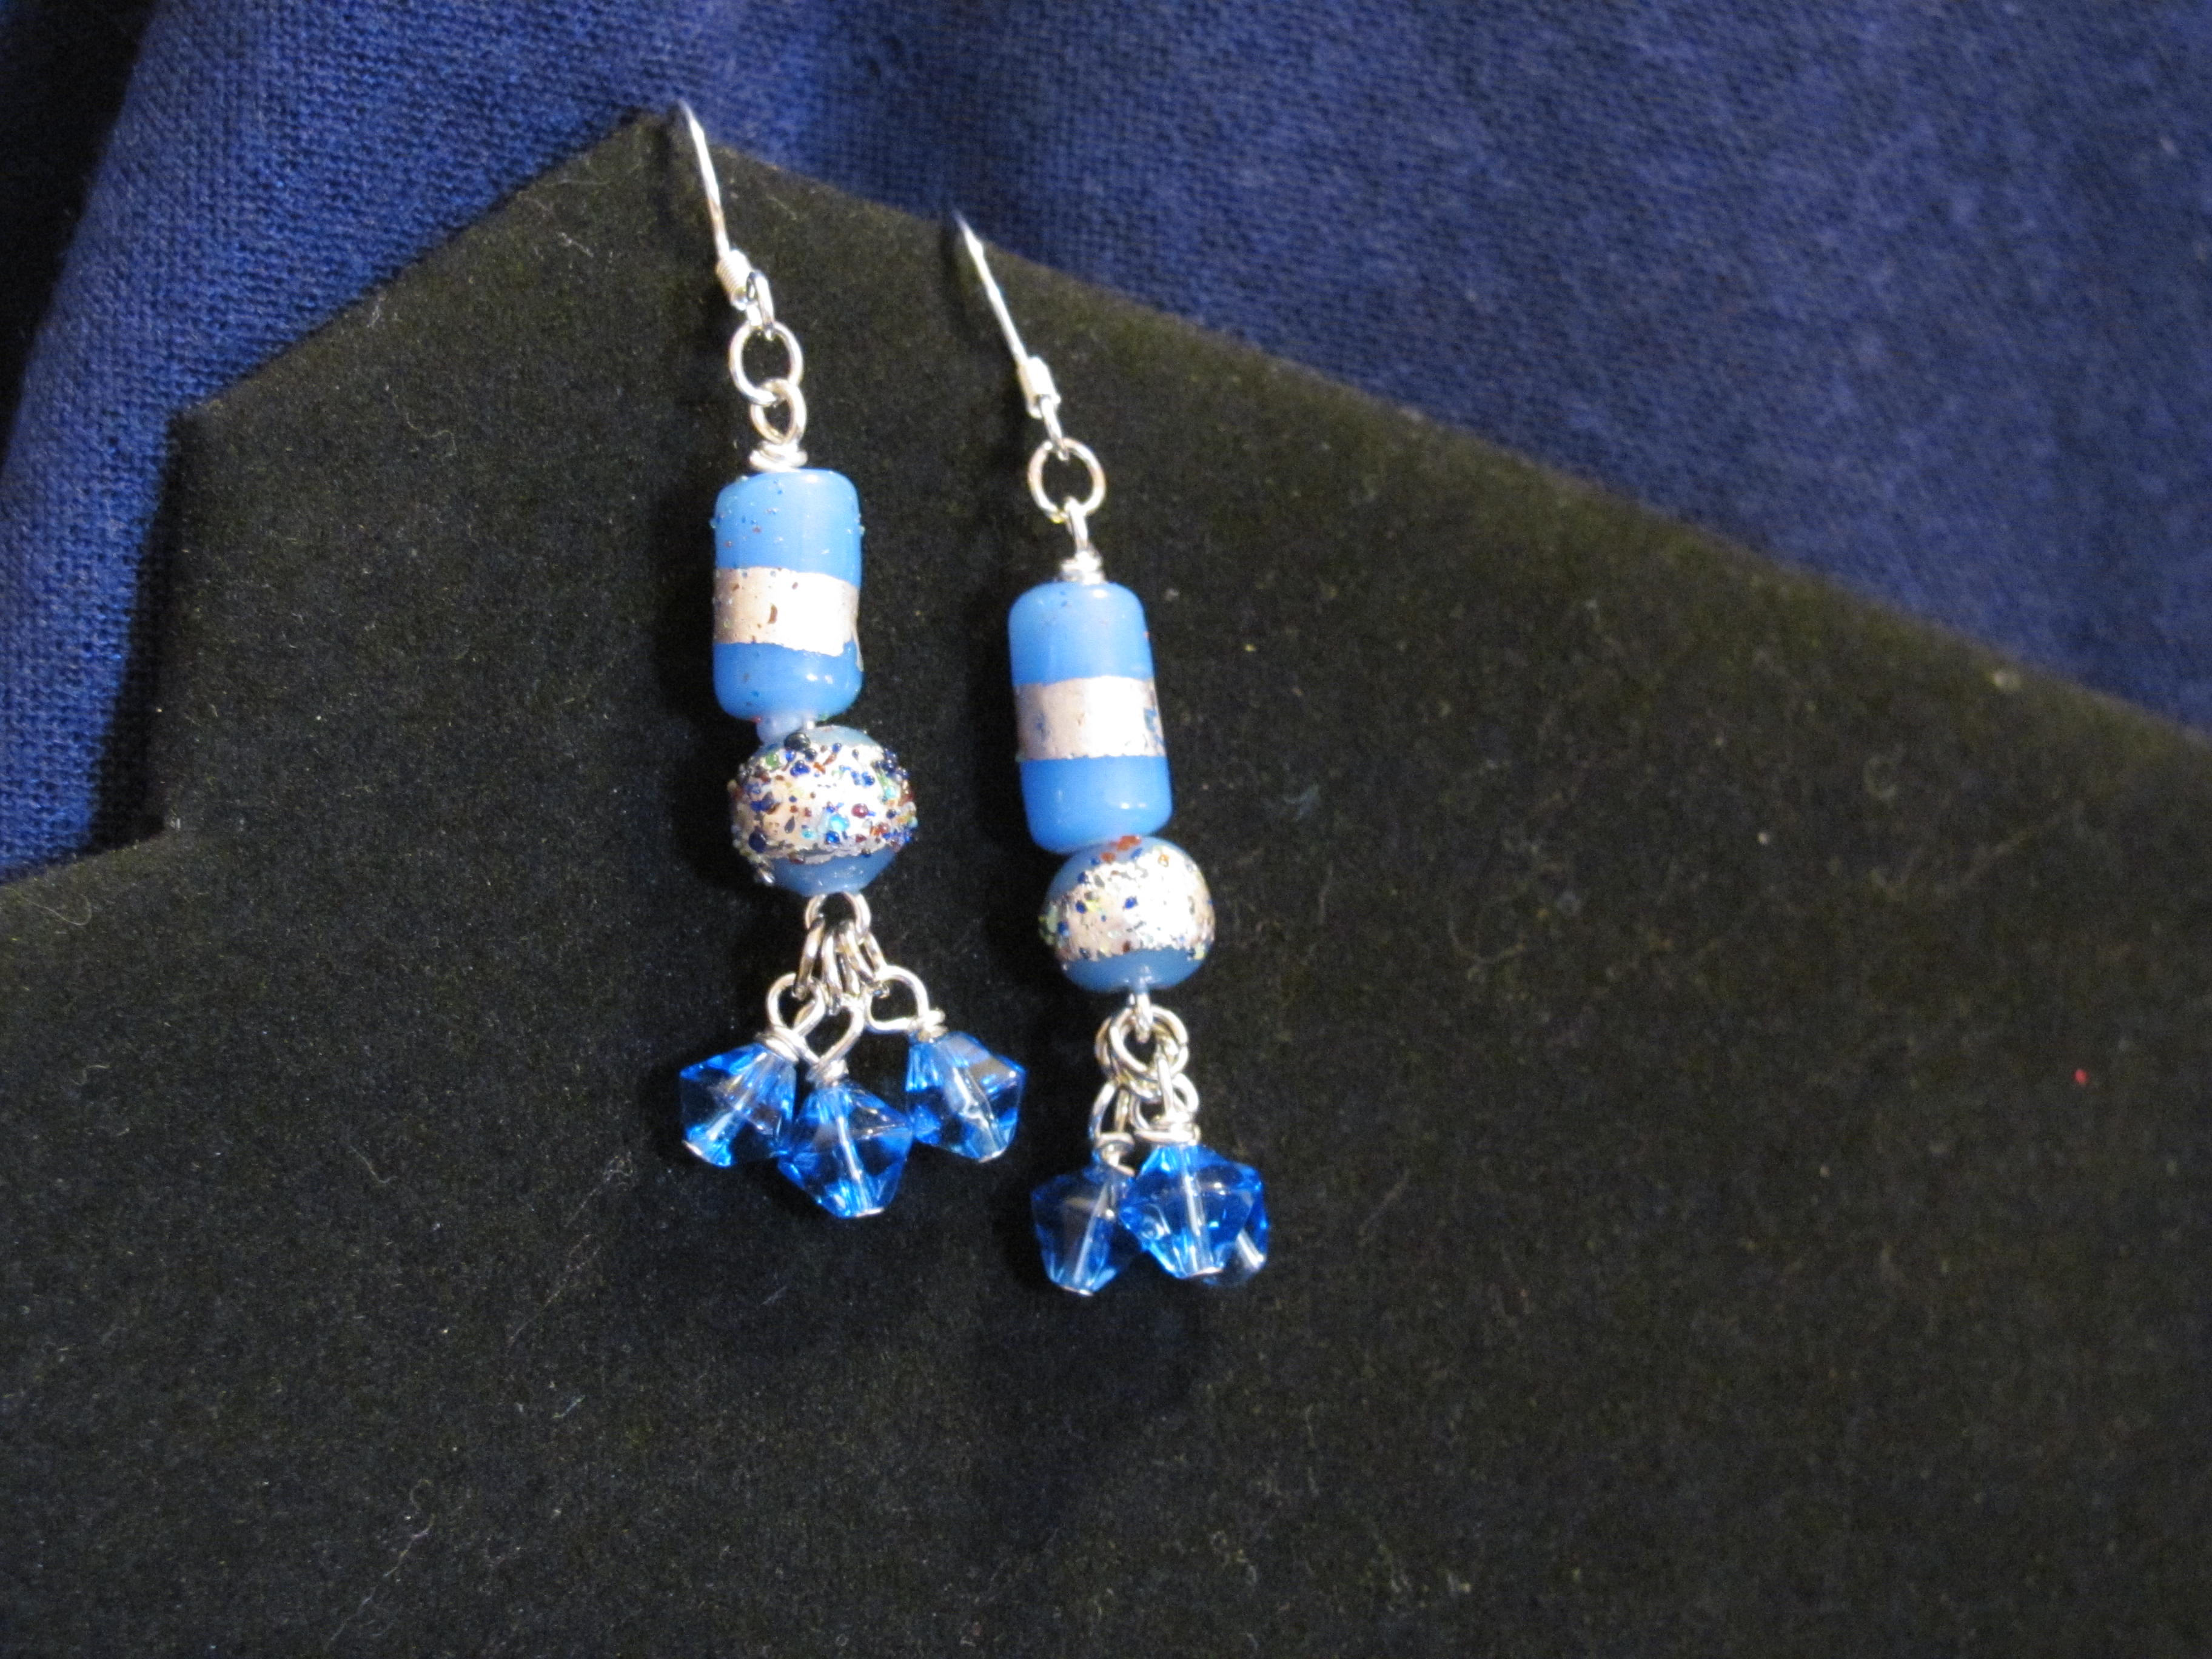 Raindrop_earrings_012_original